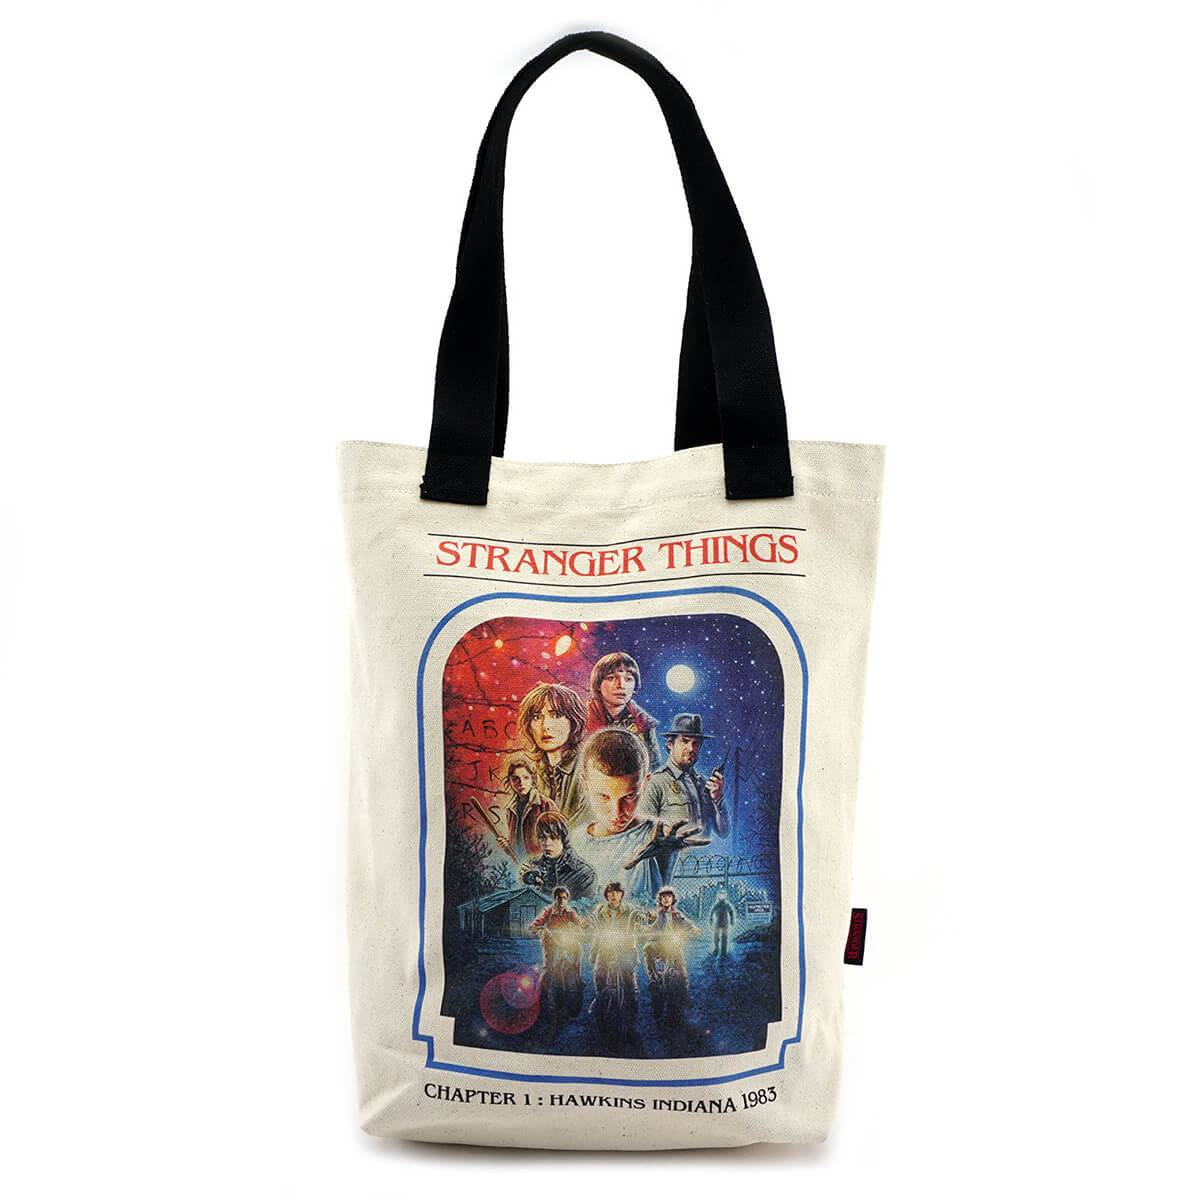 Loungefly Sac en Toile Stranger Things Chapitre 1 - Loungefly